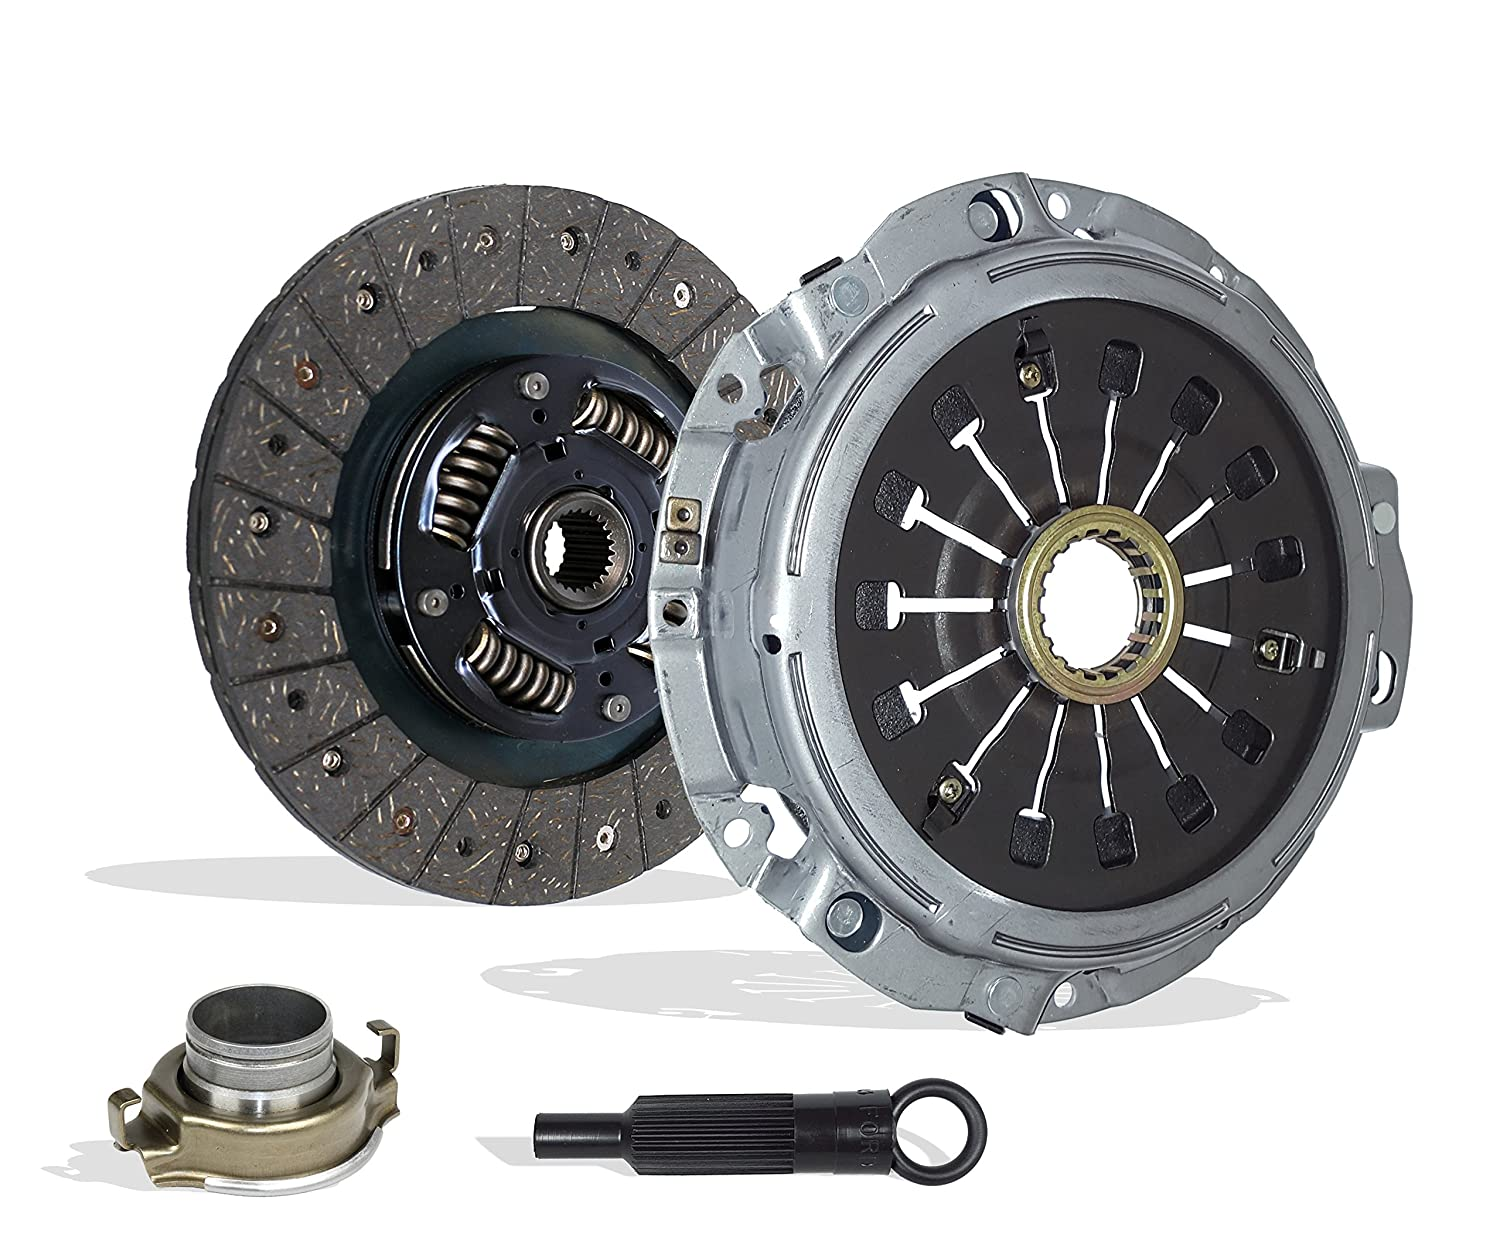 Amazon.com: Clutch Kit Works with Mitsubishi Eclipse Spyder Gt Gts Convertible Hatchback 2-Door 2000-2005 3.0L 2972CC 181Cu. In. V6 GAS SOHC Naturally ...